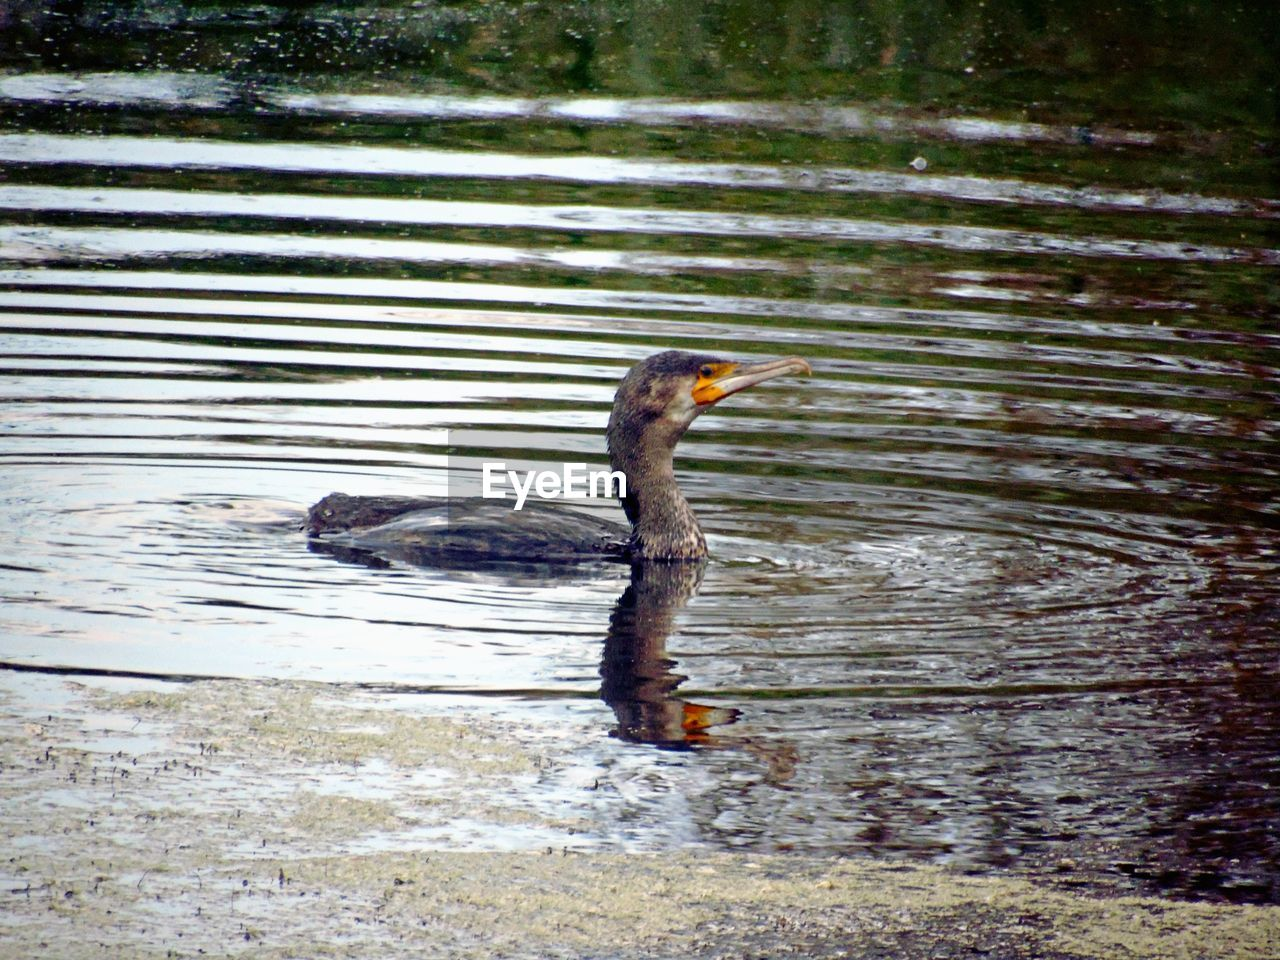 animal wildlife, animal themes, one animal, animal, water, animals in the wild, bird, vertebrate, lake, no people, day, nature, reflection, swimming, cormorant, waterfront, outdoors, rippled, side view